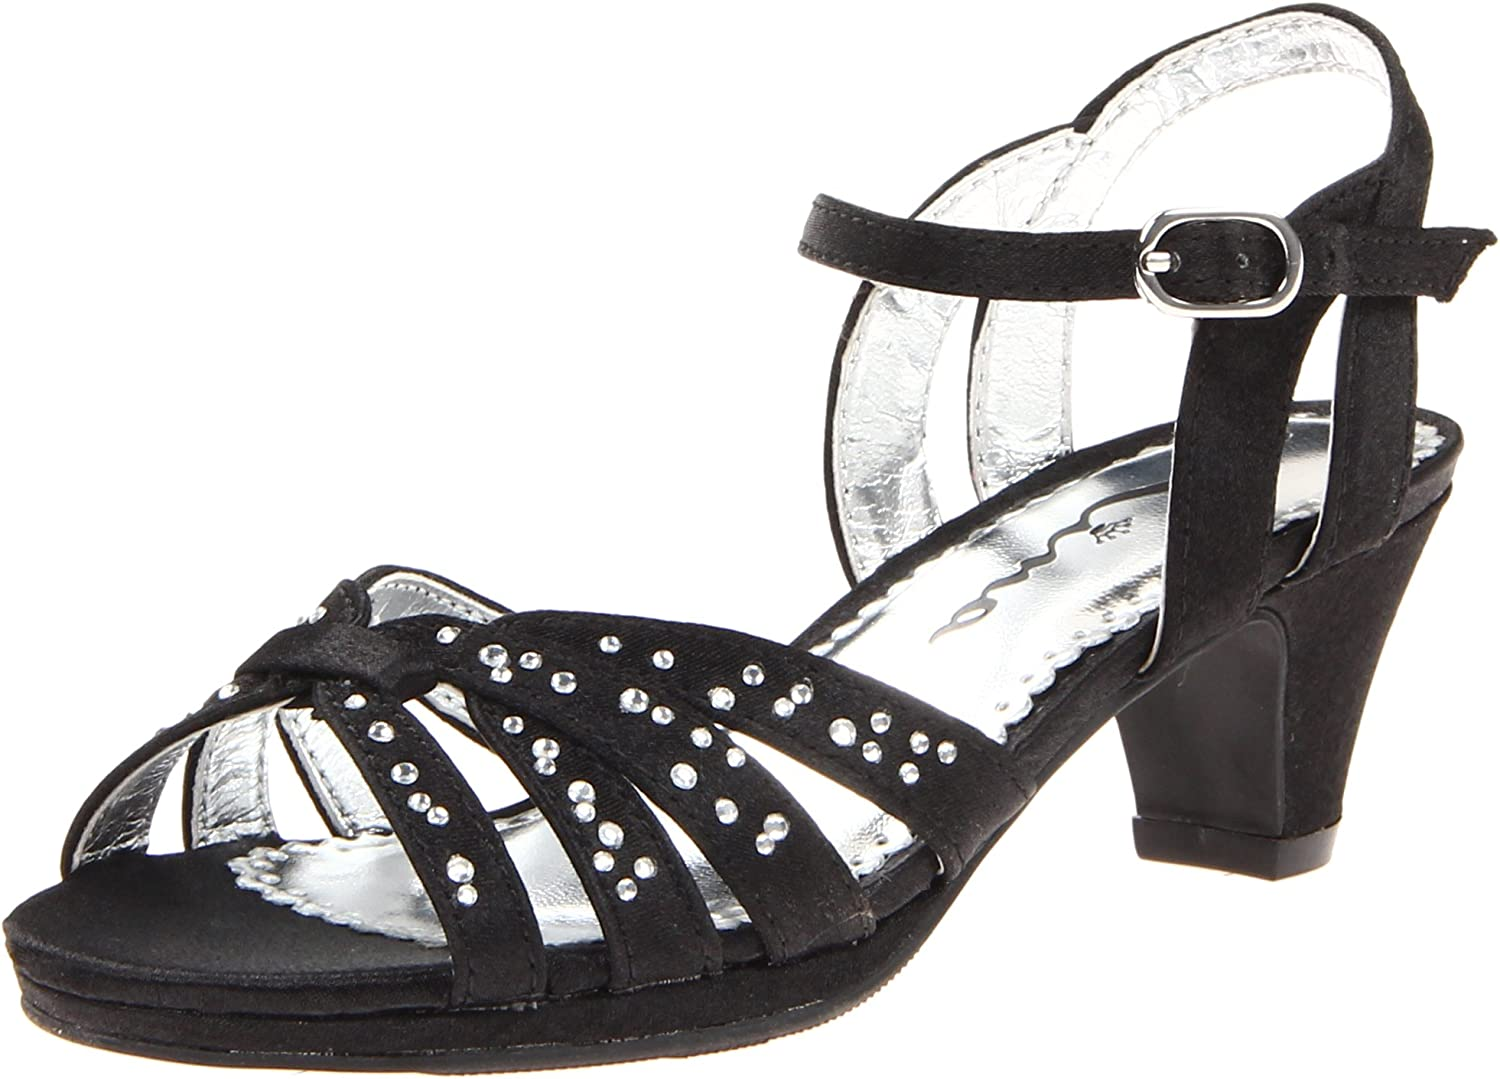 Nina Wendy Buckle Buckle Quarter Strap Dress Sandal (Toddler Little Kid Big Kid), schwarz Satin, 10 M US Toddler  um Ihnen einen angenehmen Online-Einkauf zu ermöglichen